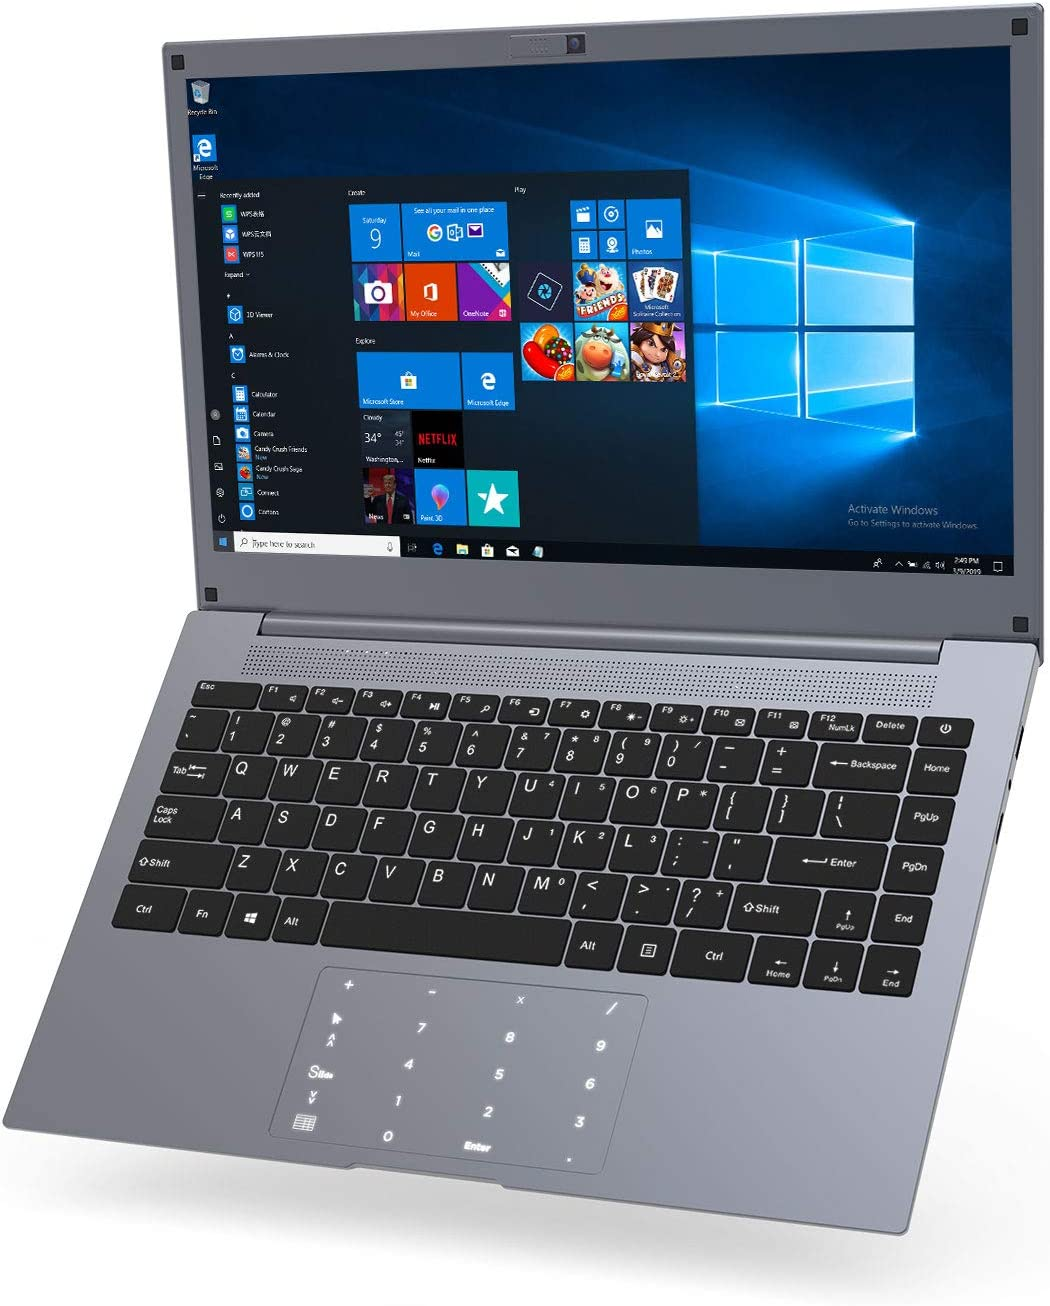 Laptop 14 Inch Windows 10 – Winnovo Computer 6GB RAM 64GB ROM Intel Celeron HD IPS Display SSD Extension Touch Numeric Keypad WiFi HDMI USB3.0 (Space Grey)